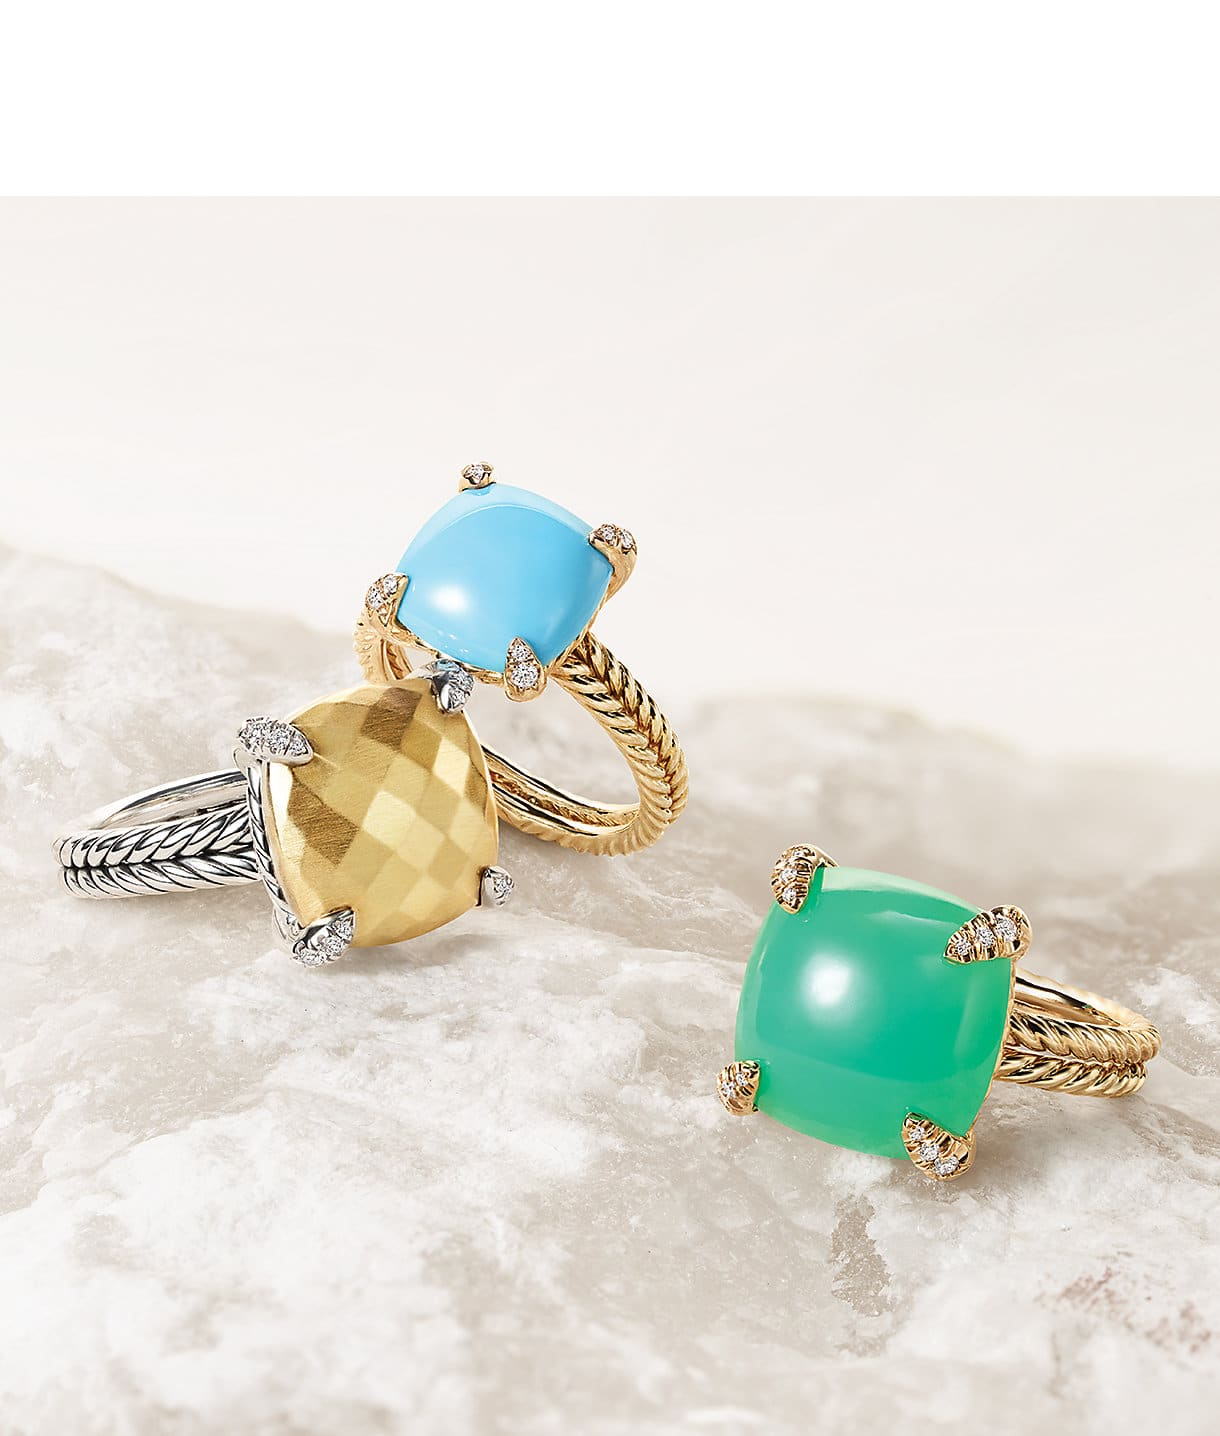 Châtelaine® rings in 18K yellow gold or sterling silver with turquoise, chrysoprase or gold dome and pavé diamonds on a stone.